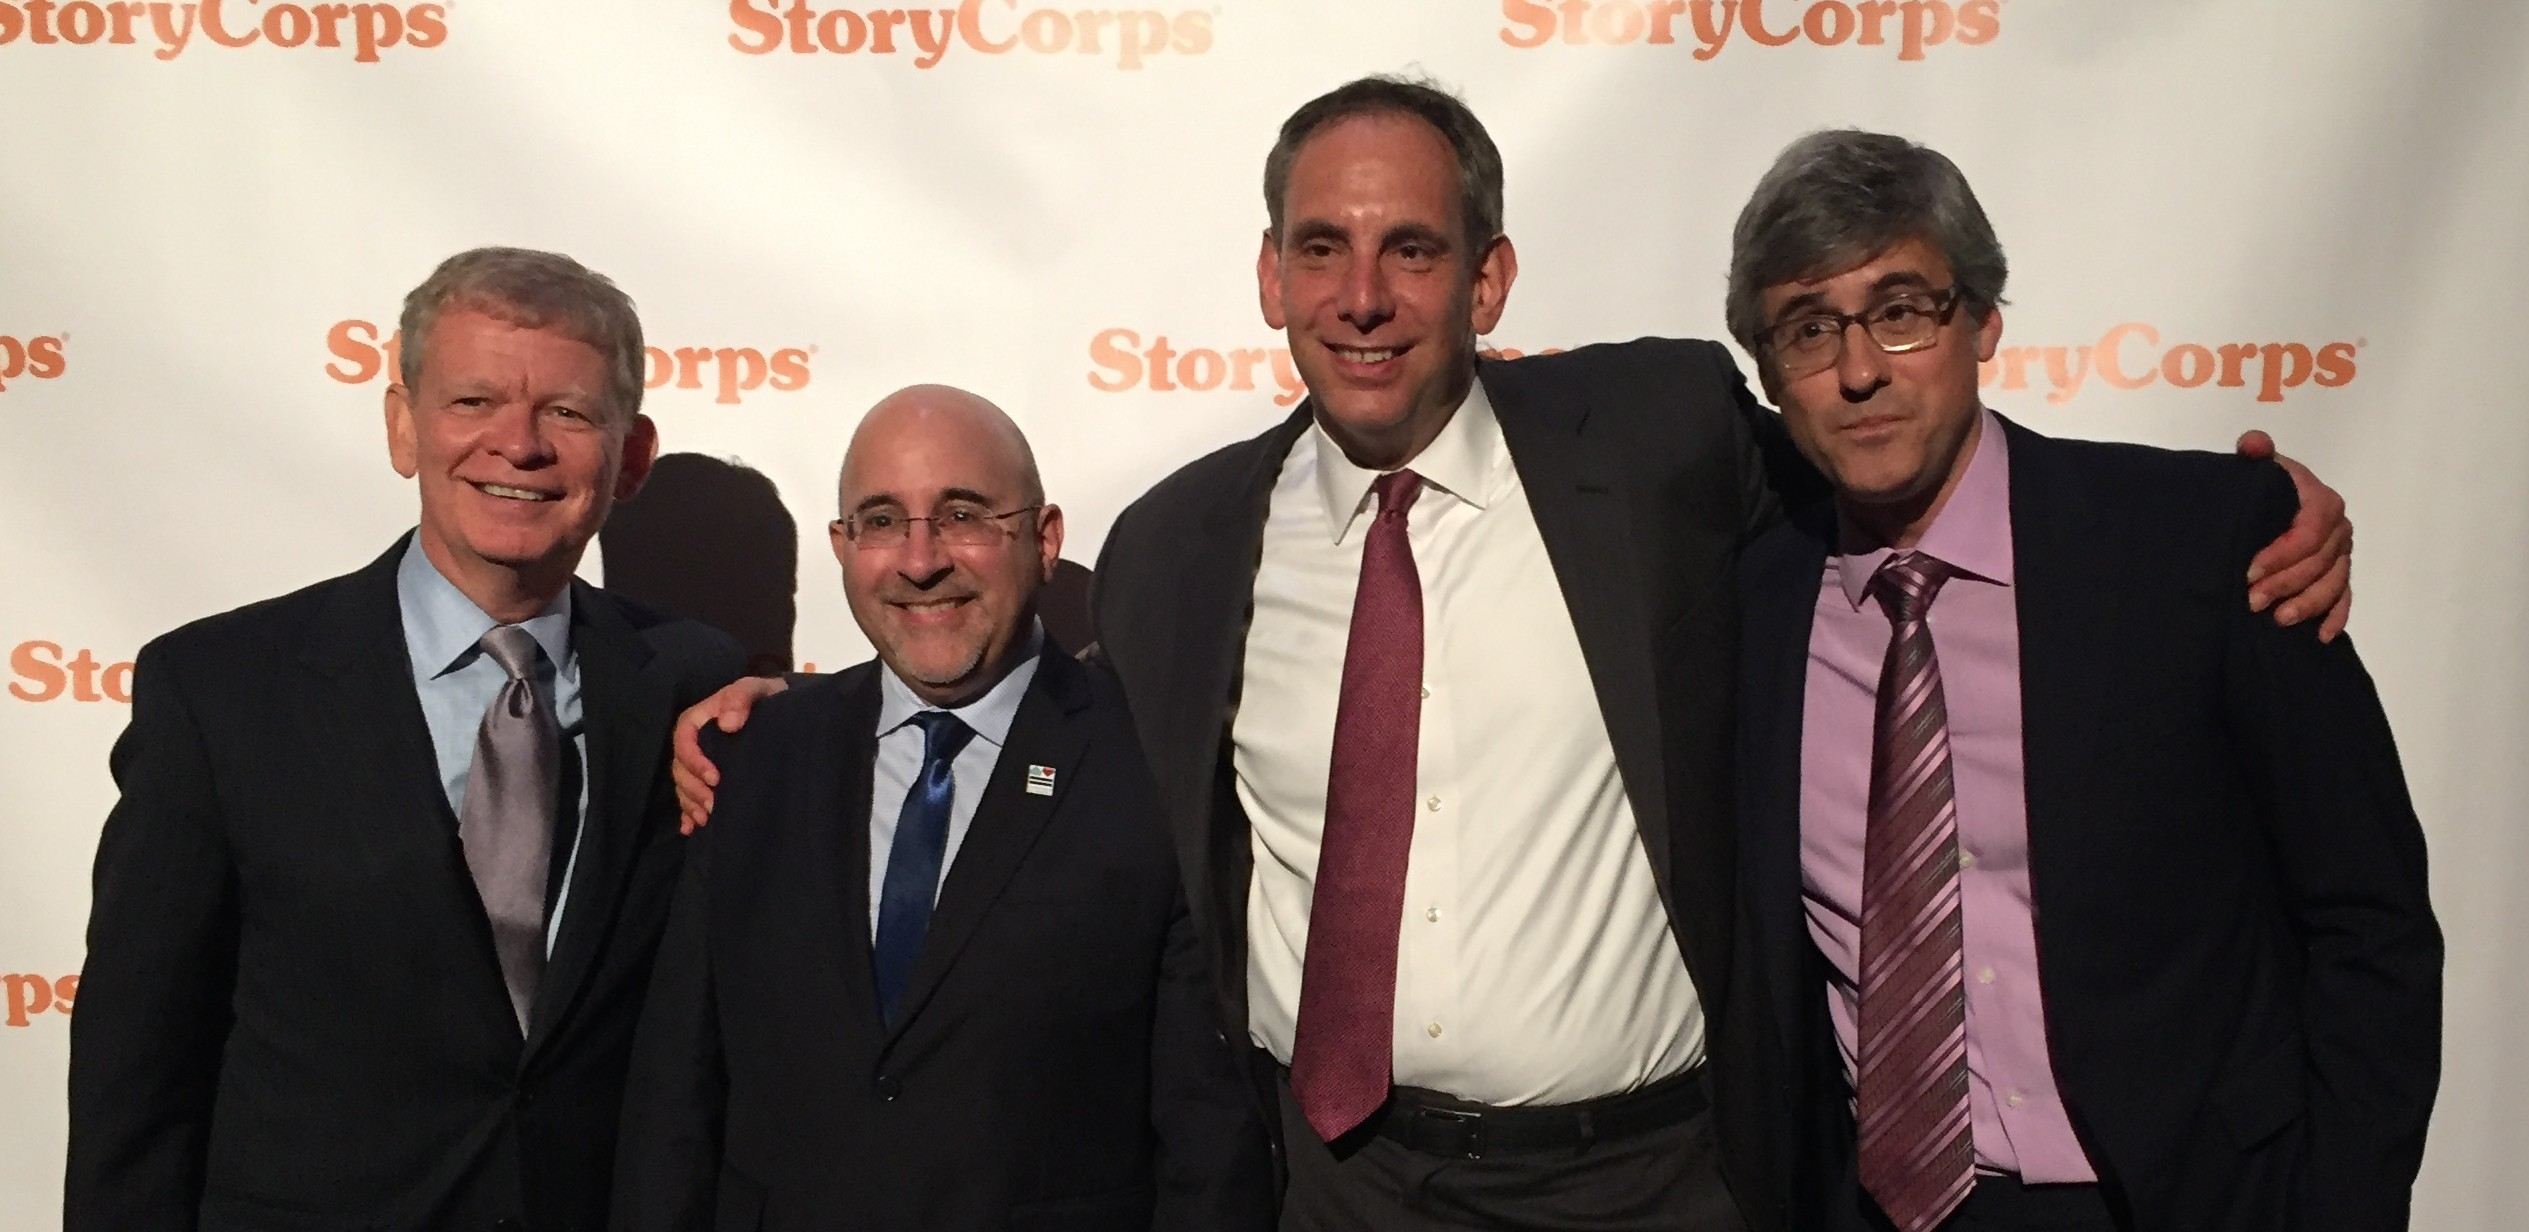 OutLoud: Celebrating the Third Annual StoryCorps Gala